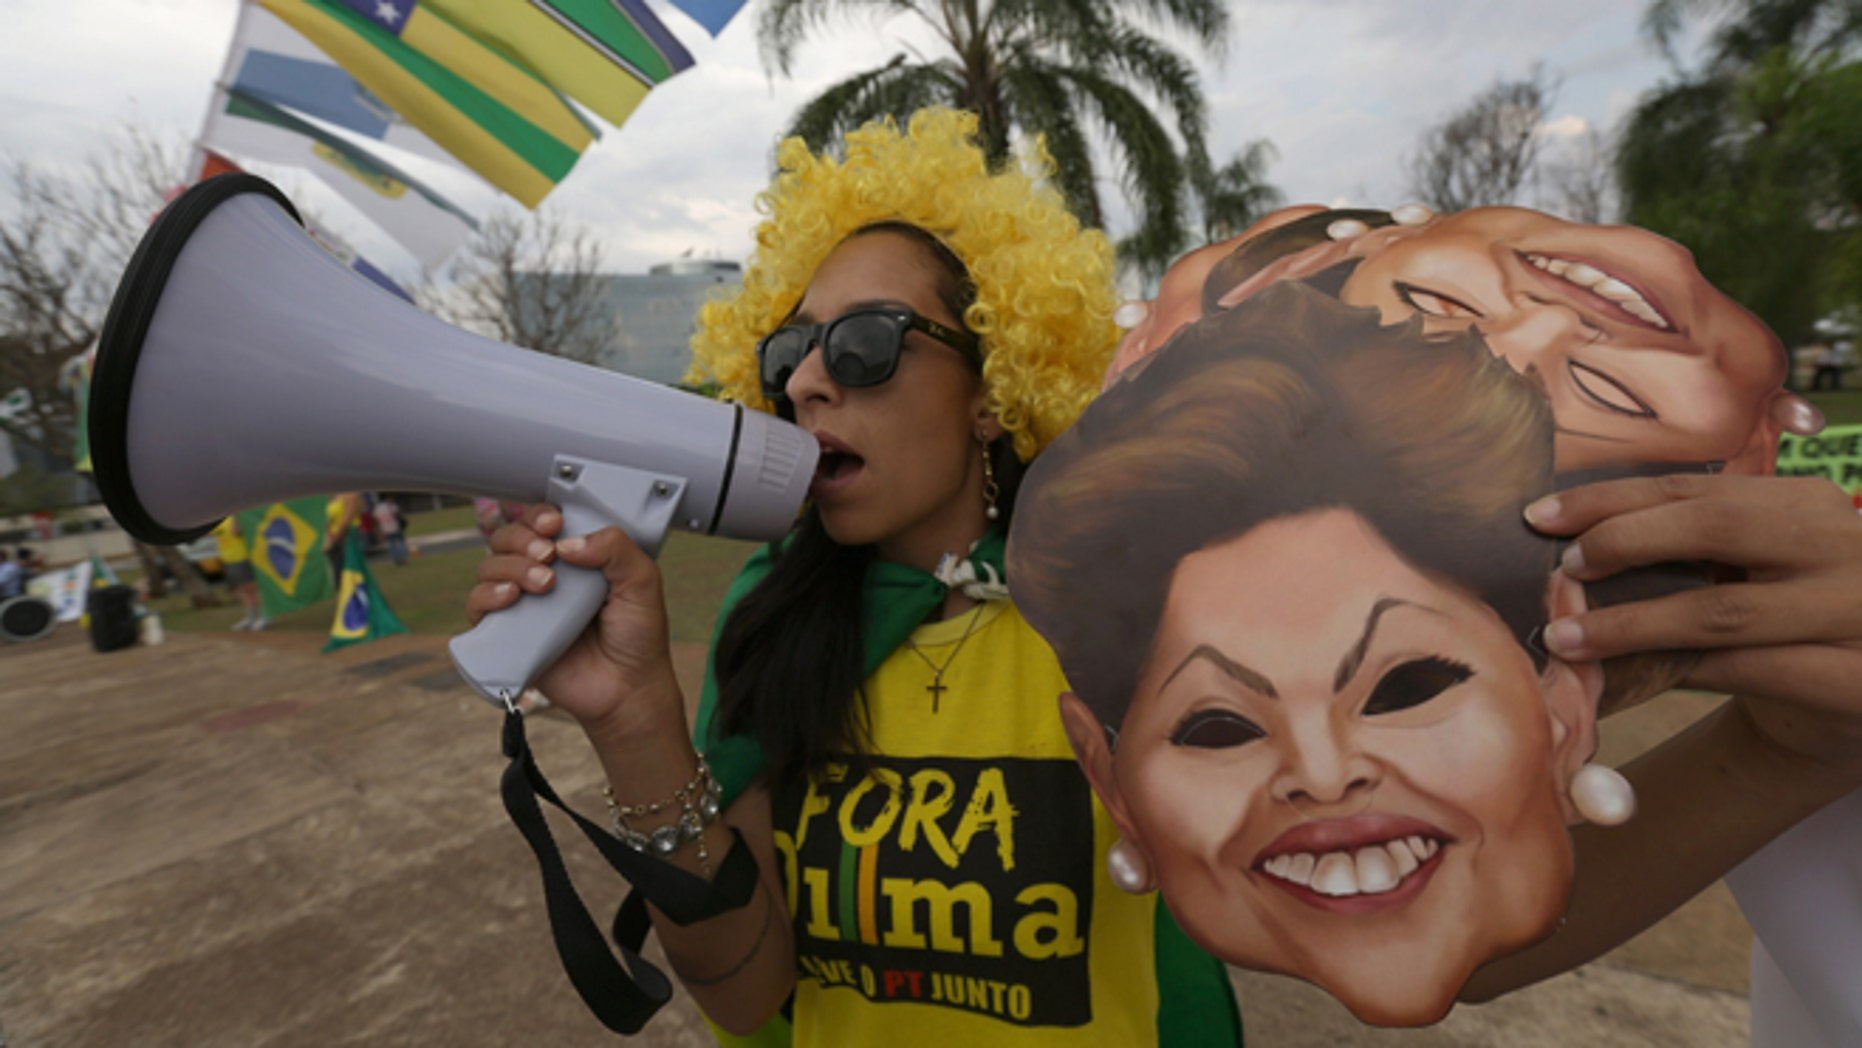 A demonstrator shouts slogans against Brazilian President Dilma Rousseff with a bullhorn outside the headquarters of the the Federal Court of Accounts in Brasilia, Brazil, Wednesday, Oct. 7, 2015. The Court decides today whether to approve the government accounts of the President Rousseff for 2011-214. Political opposition parties are accusing Rousseff of concealing information about her government's accounts. (AP Photo/Eraldo Peres)